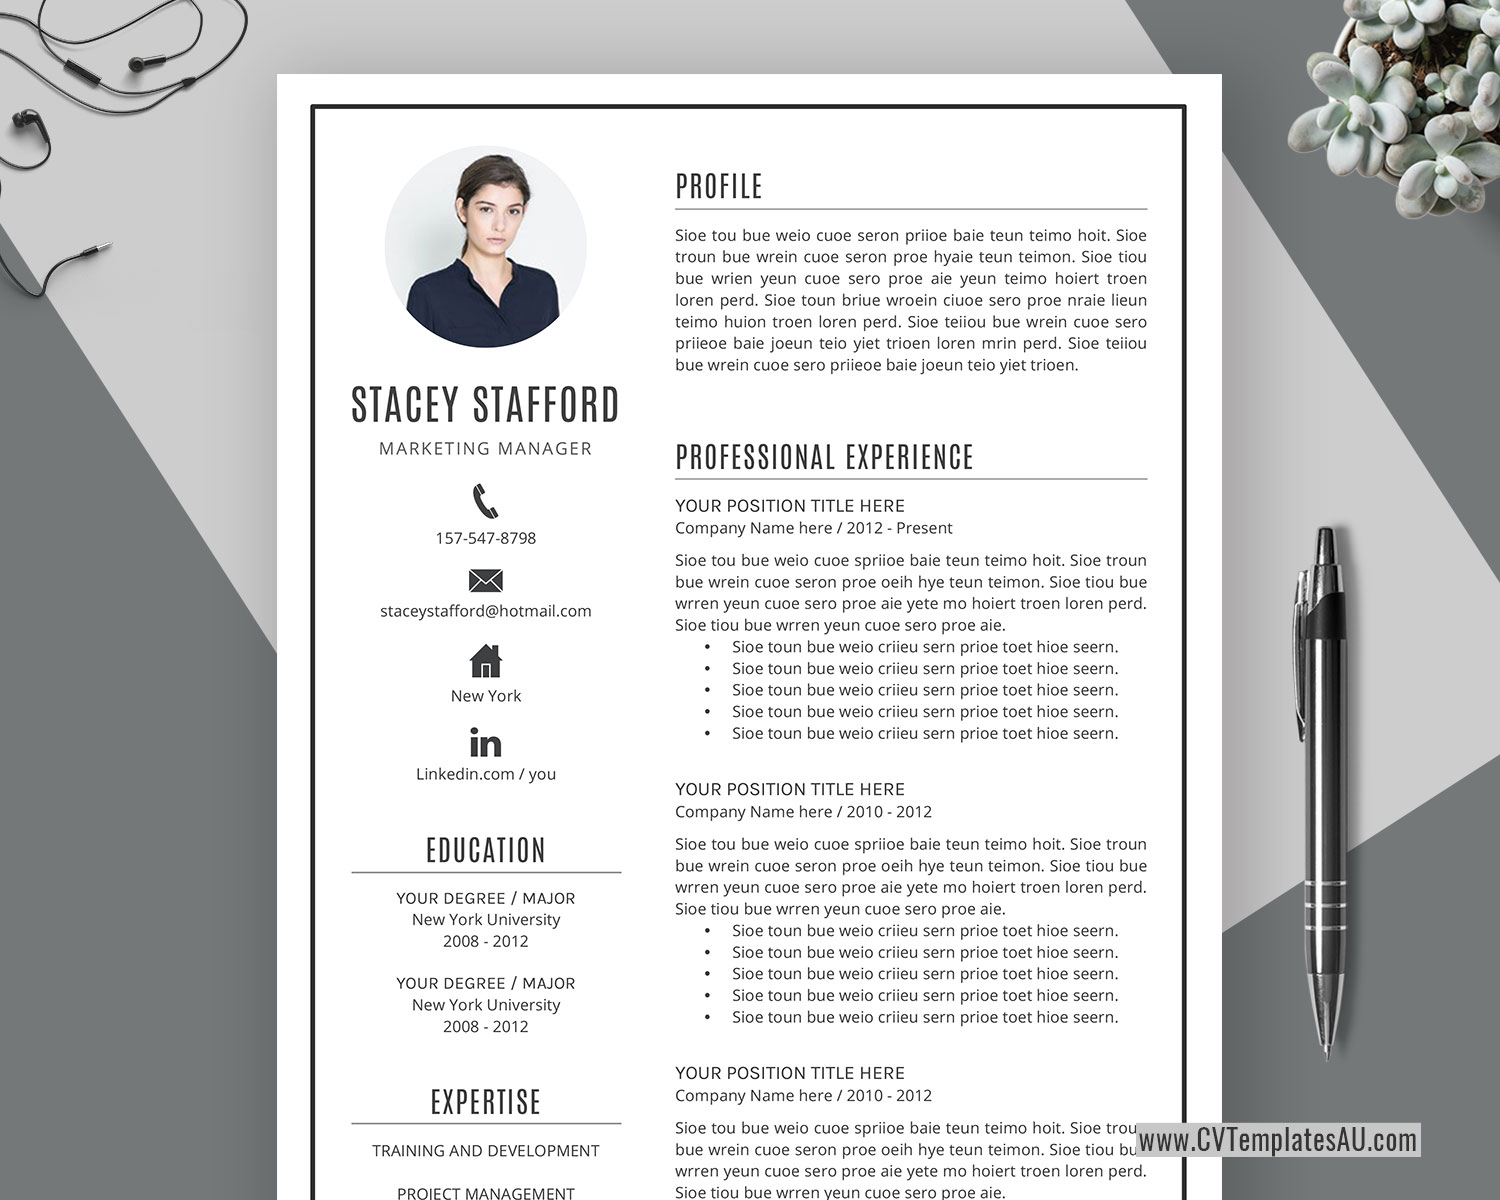 Professional CV Template for Microsoft Word. Cover Letter. Modern Curriculum Vitae. Creative Resume Design. Teacher Resume. 1 Page. 2 Page. 3 Page ...